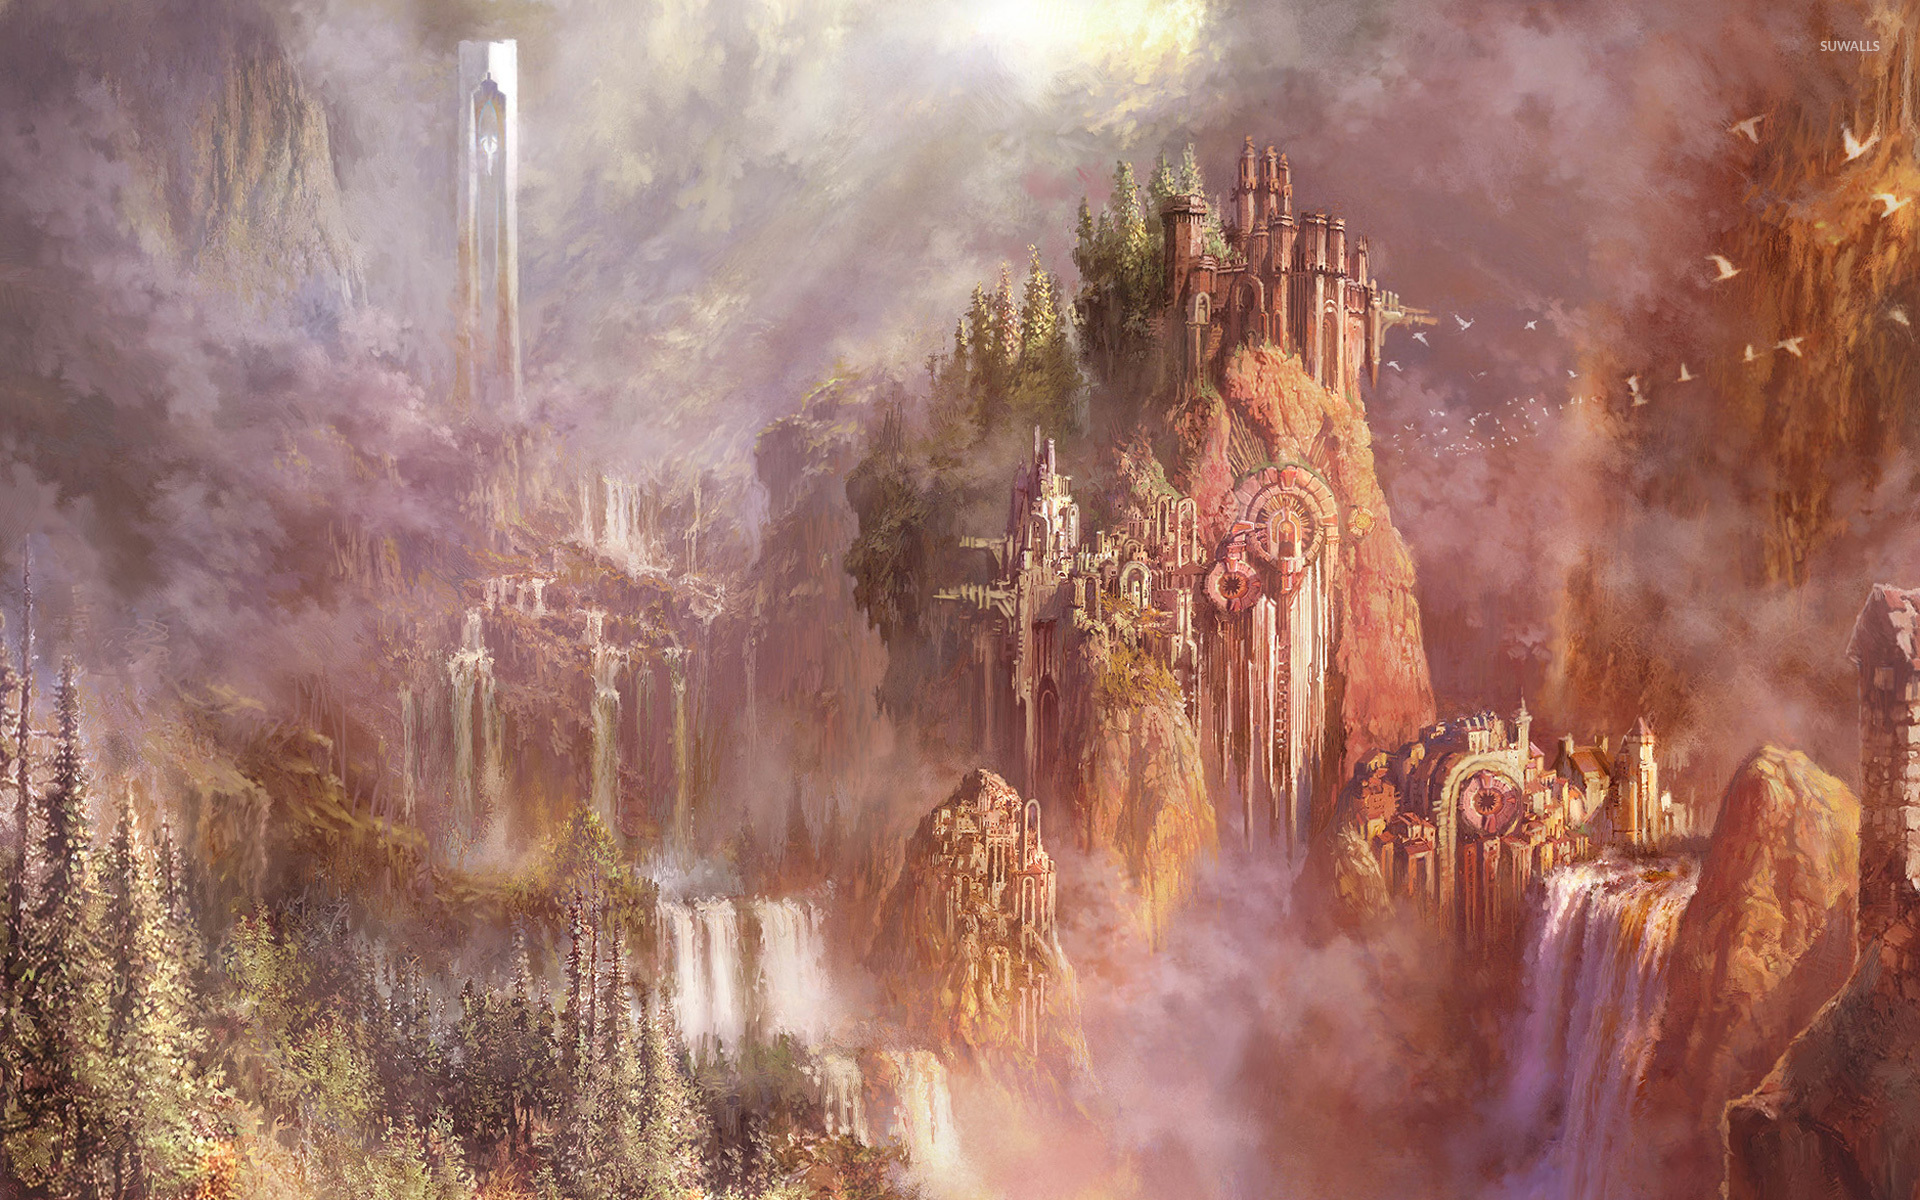 Aion Tower of Eternity wallpapers (87 Wallpapers) - HD Wallpapers